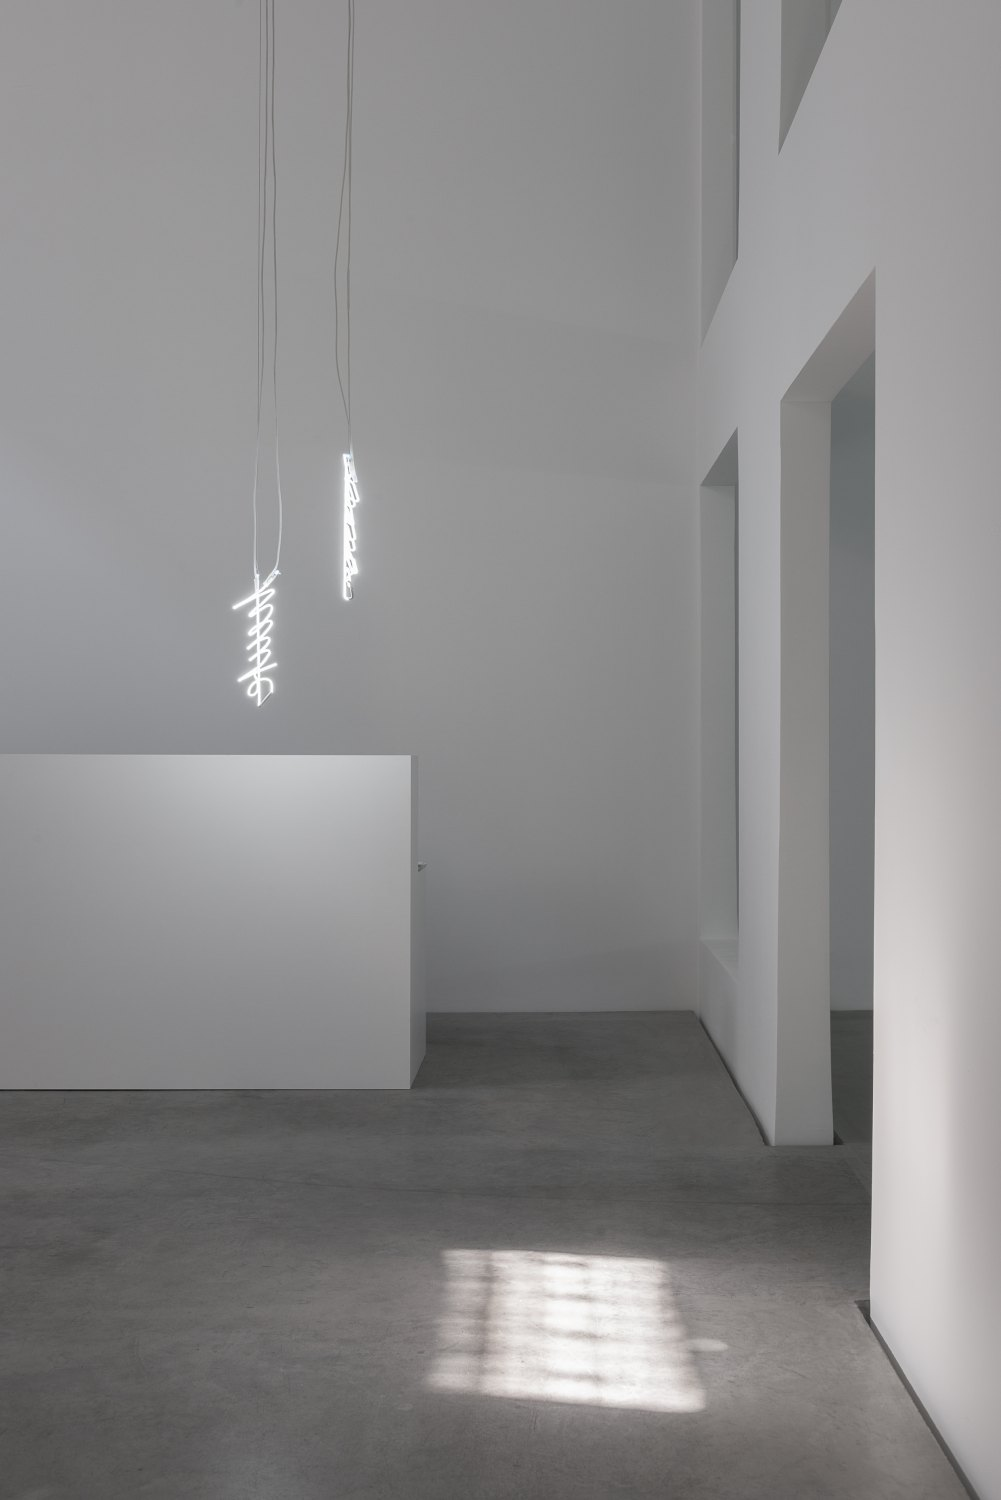 Cerith Wyn Evans 'L=U=M=E=N' After H.D., 2016 (installation view) Neon (white), transformers, 1mm stainless steel cable, wire 47 x 14,5 x 6 cm